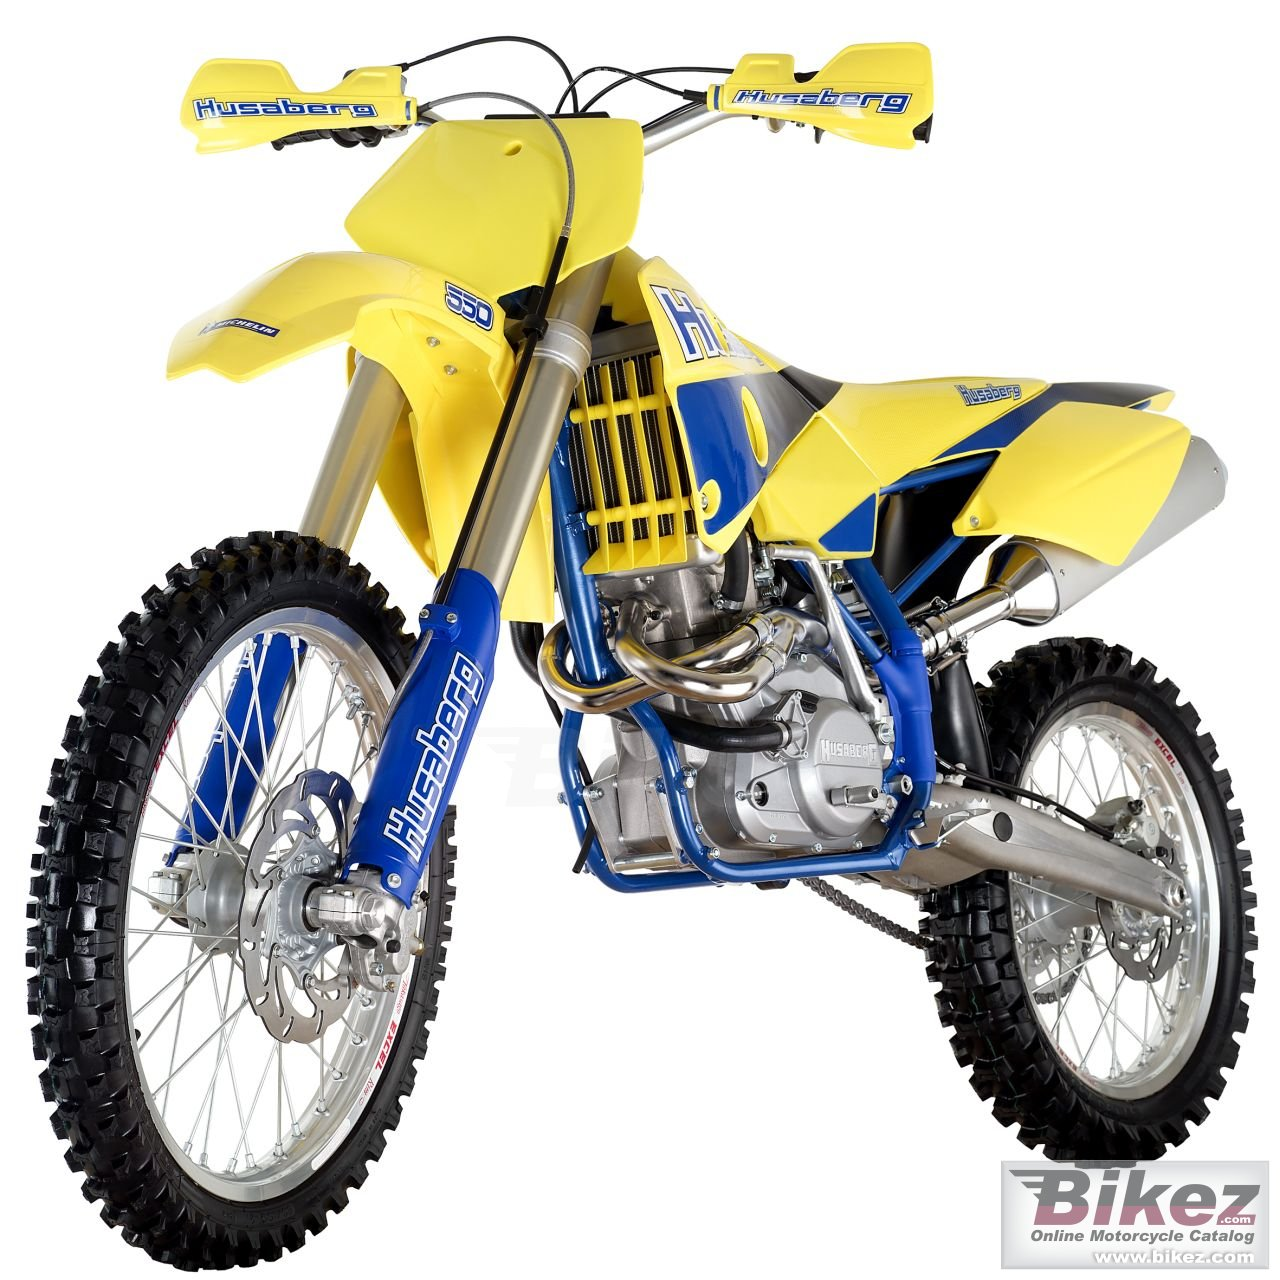 Big Husaberg fc 550 - 4 picture and wallpaper from Bikez.com